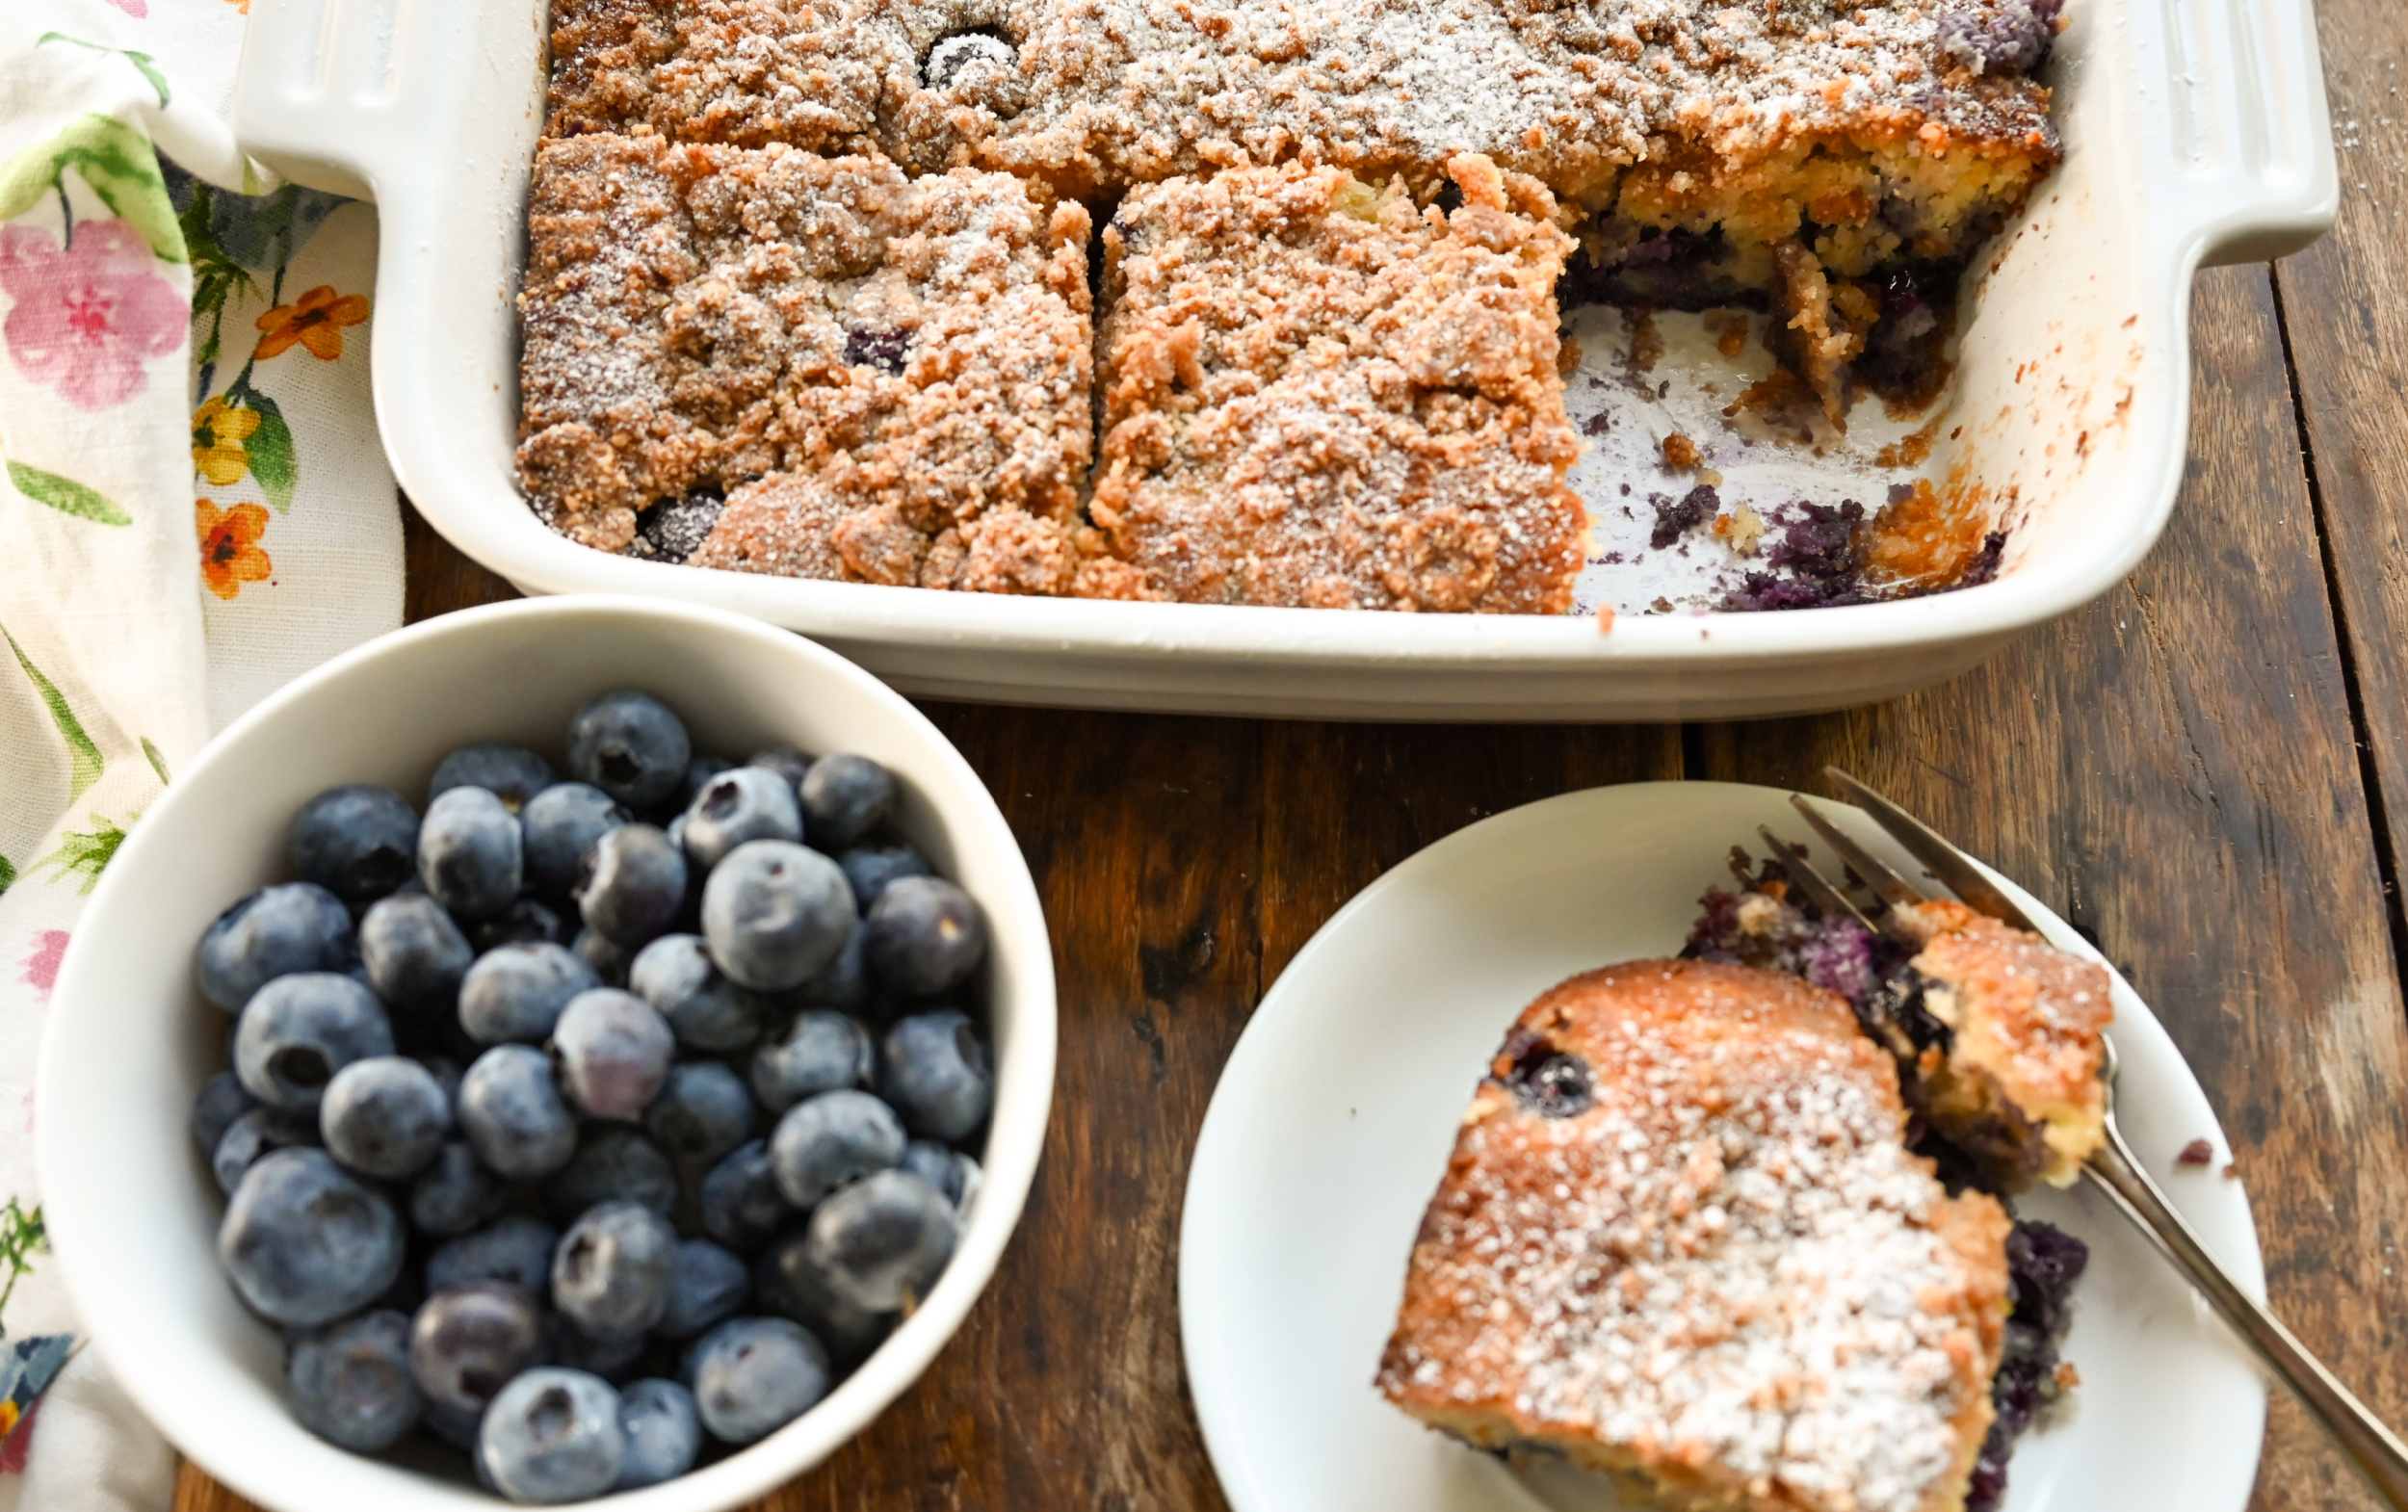 keto blueberry buckle cake sliced and served